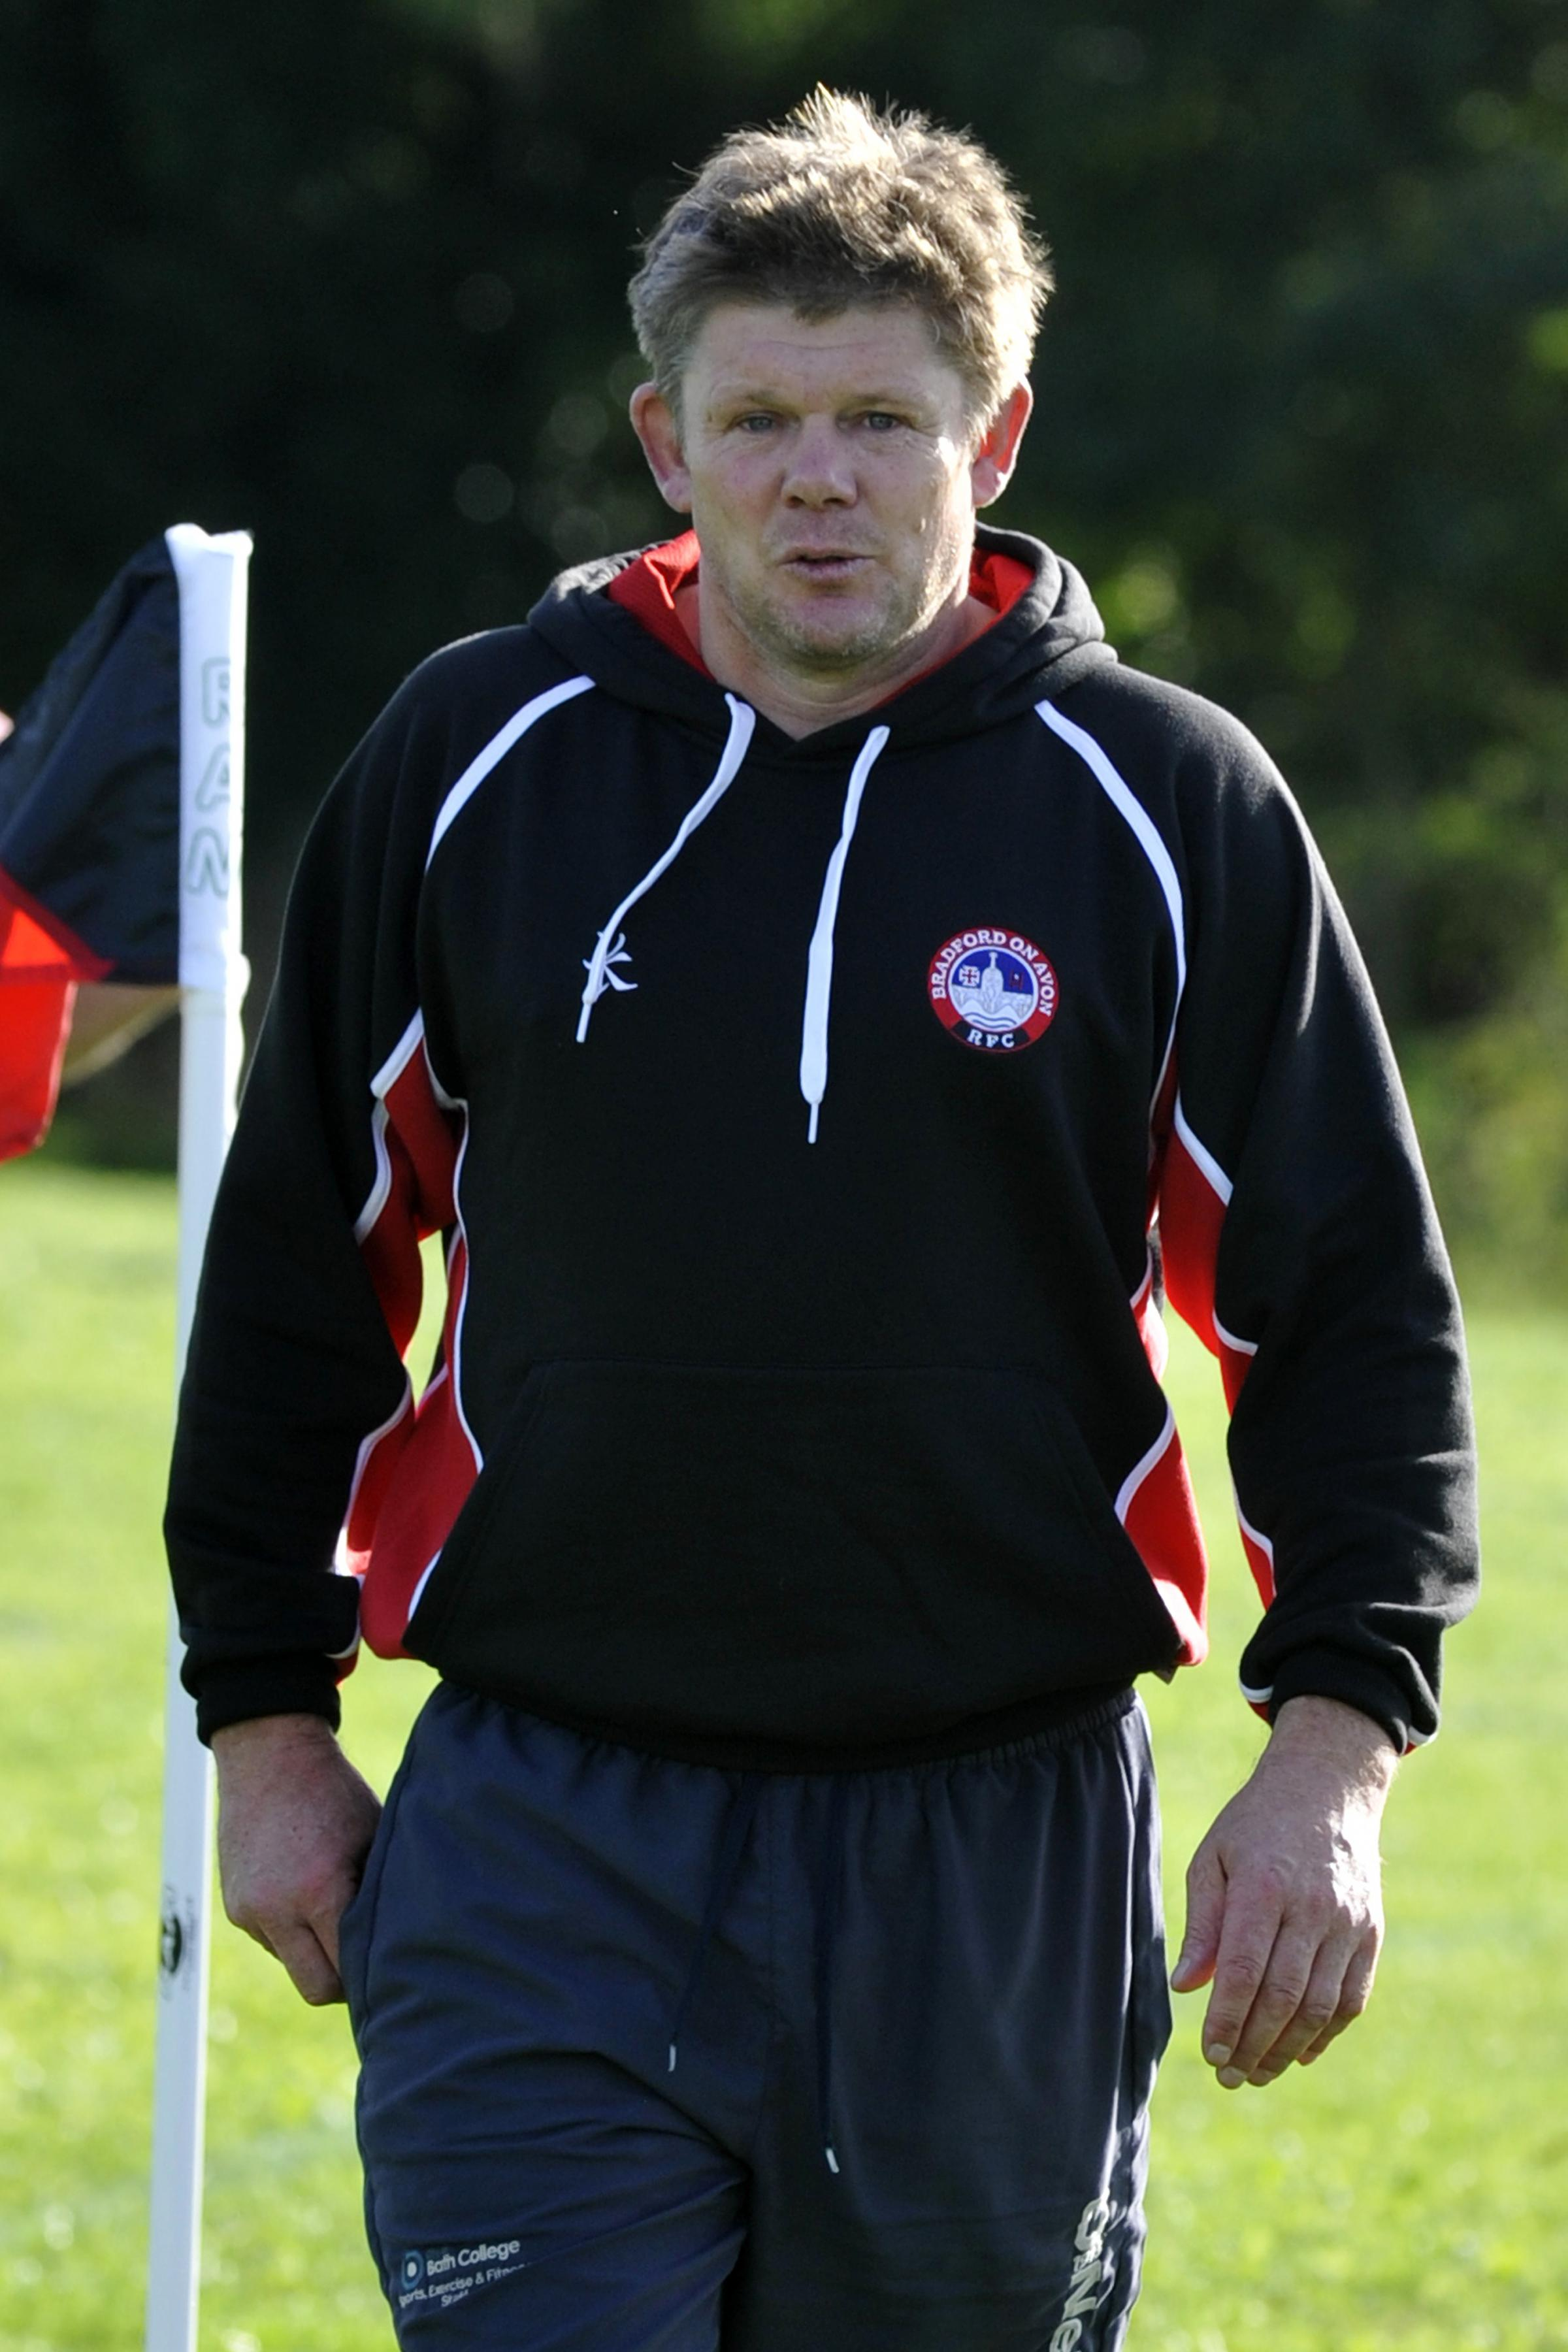 Bradford head coach Dave George